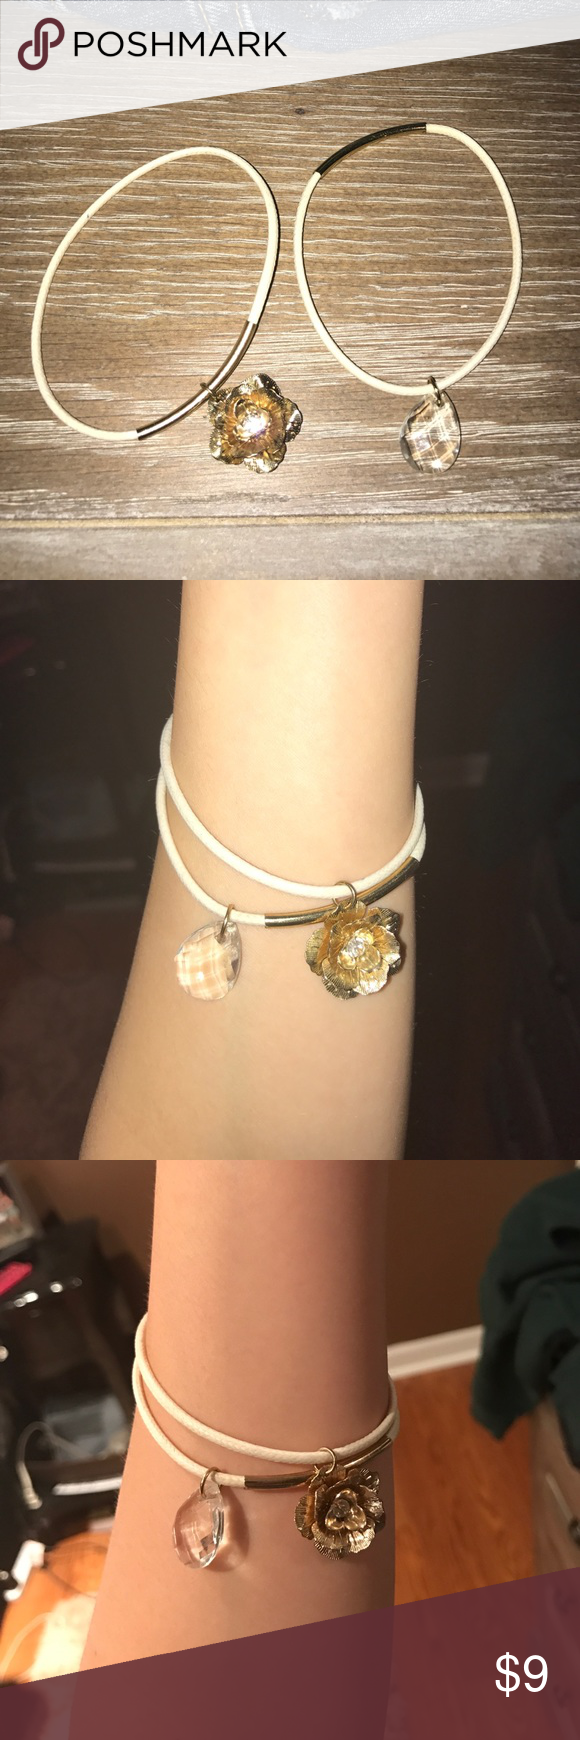 bracelets worn once other than that just trying to get it off my hands Jewelry Bracelets